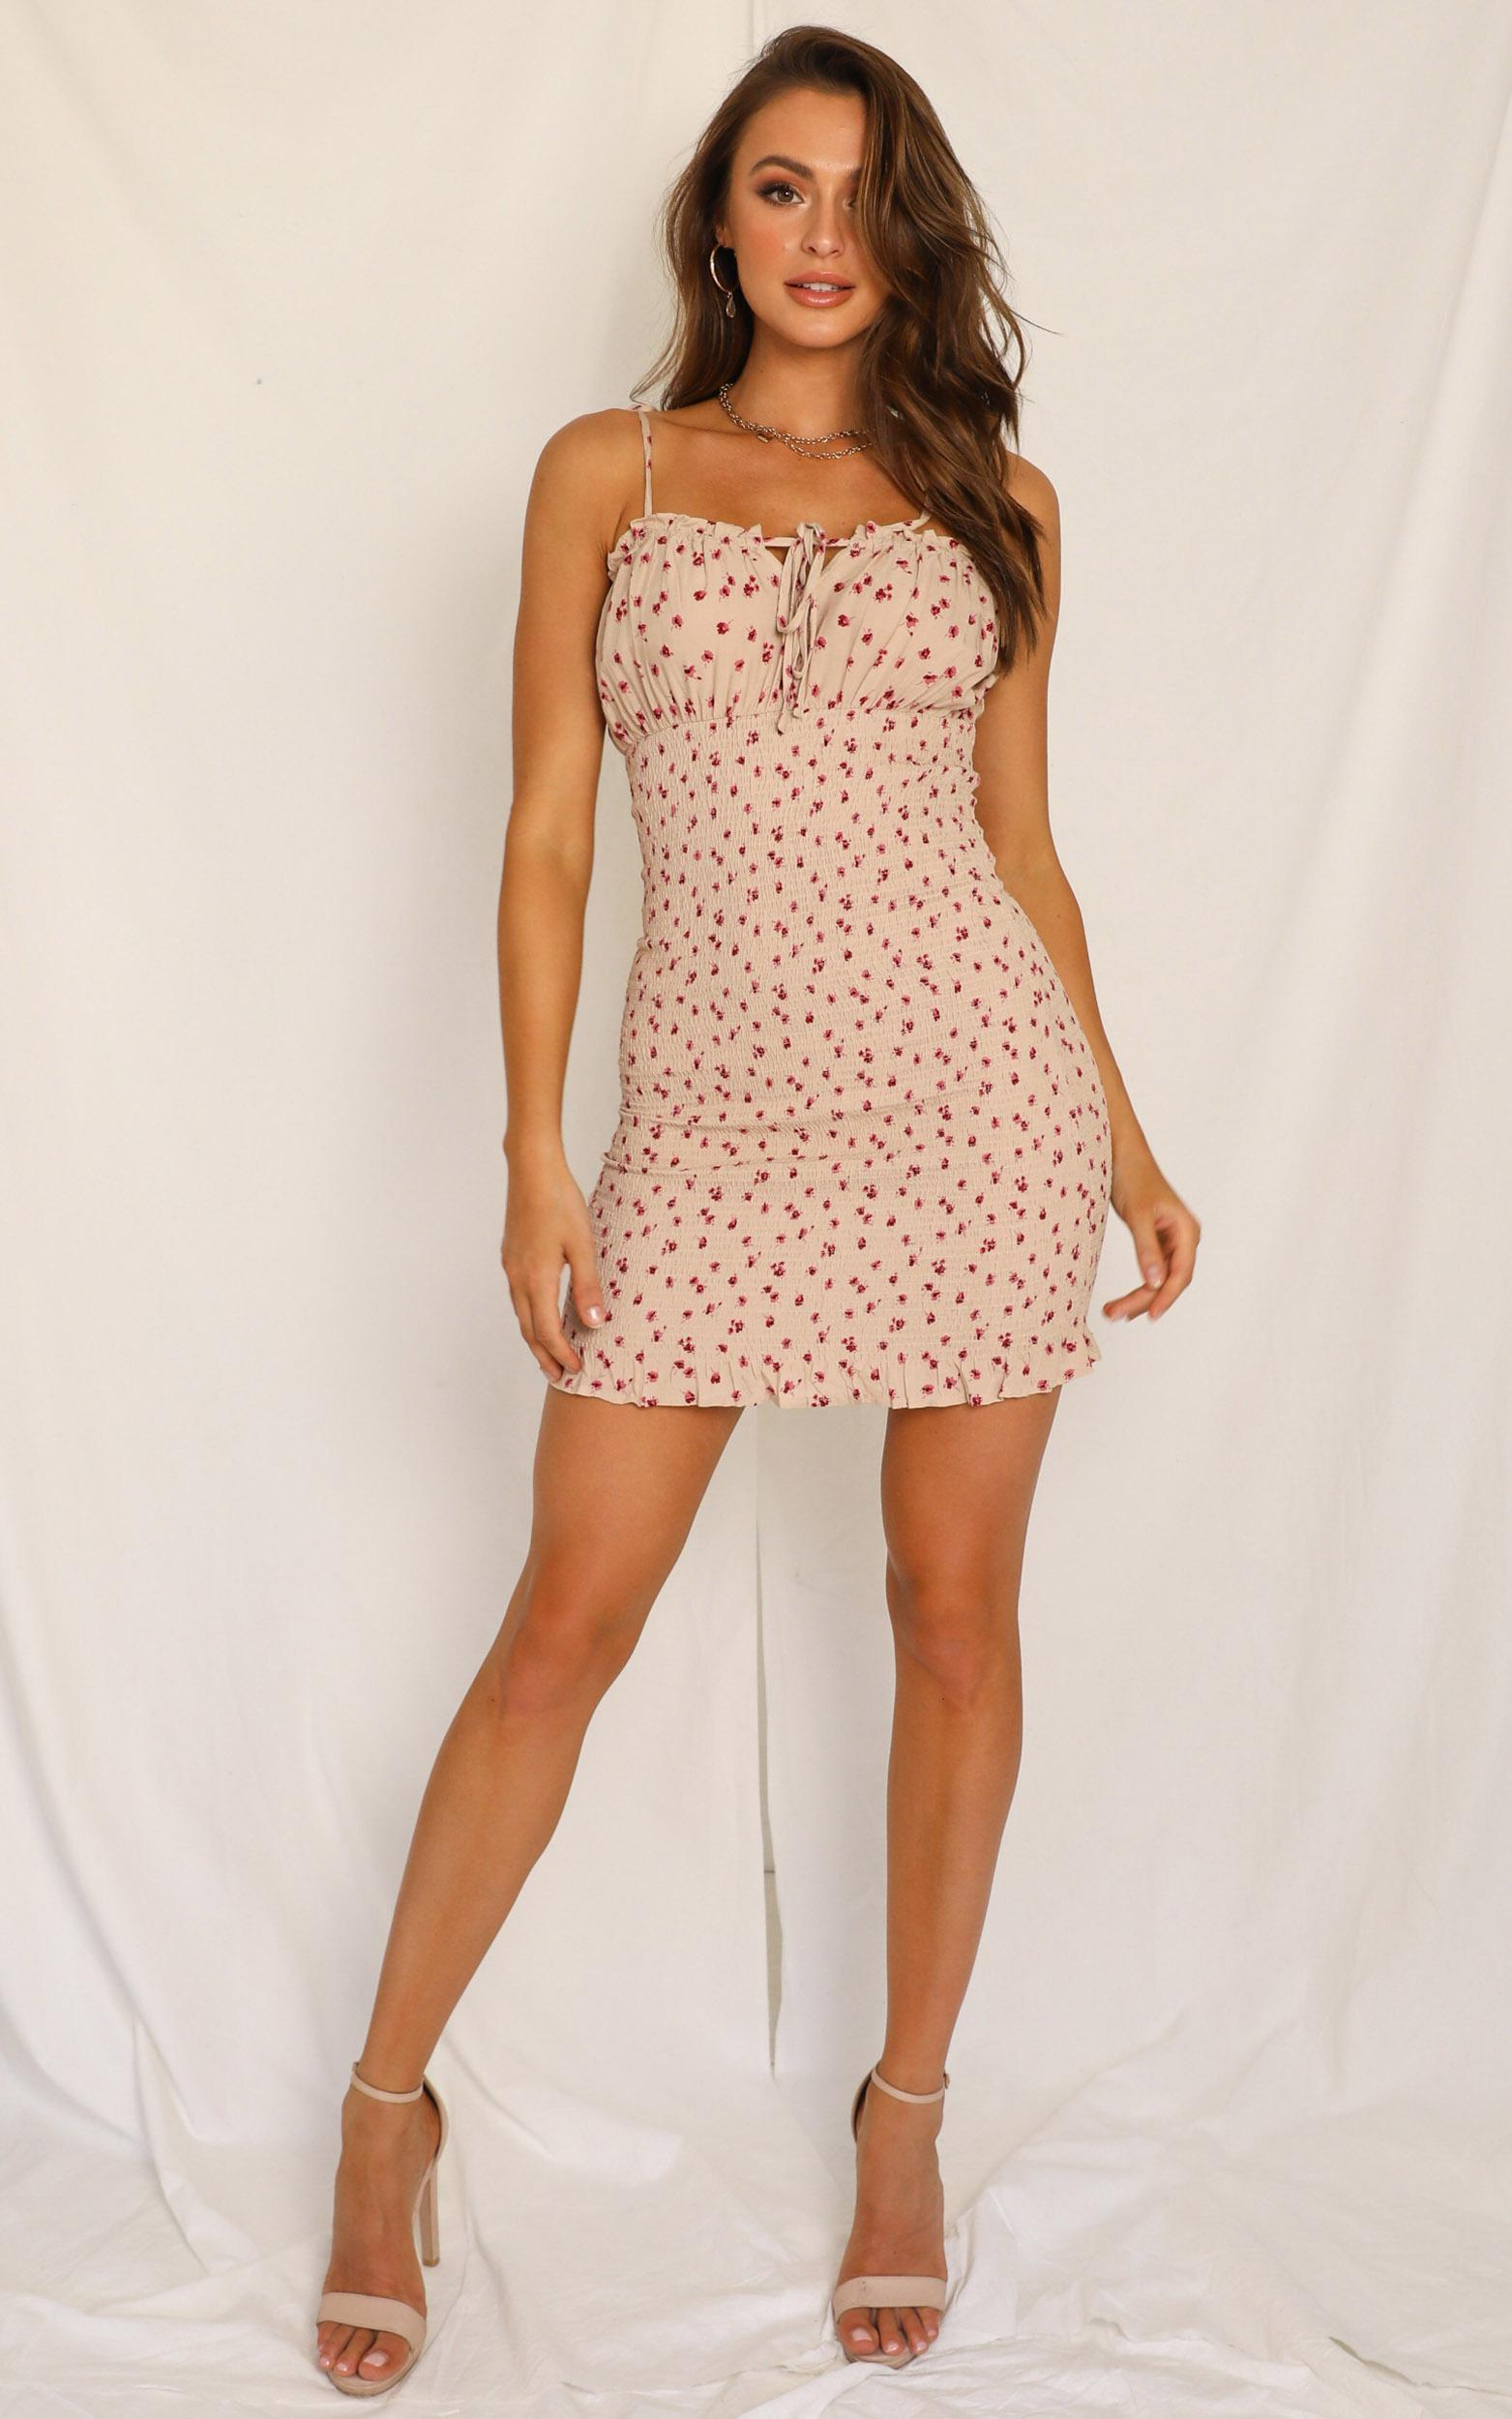 Must Be Right dress in cream floral - 12 (L), Cream, hi-res image number null